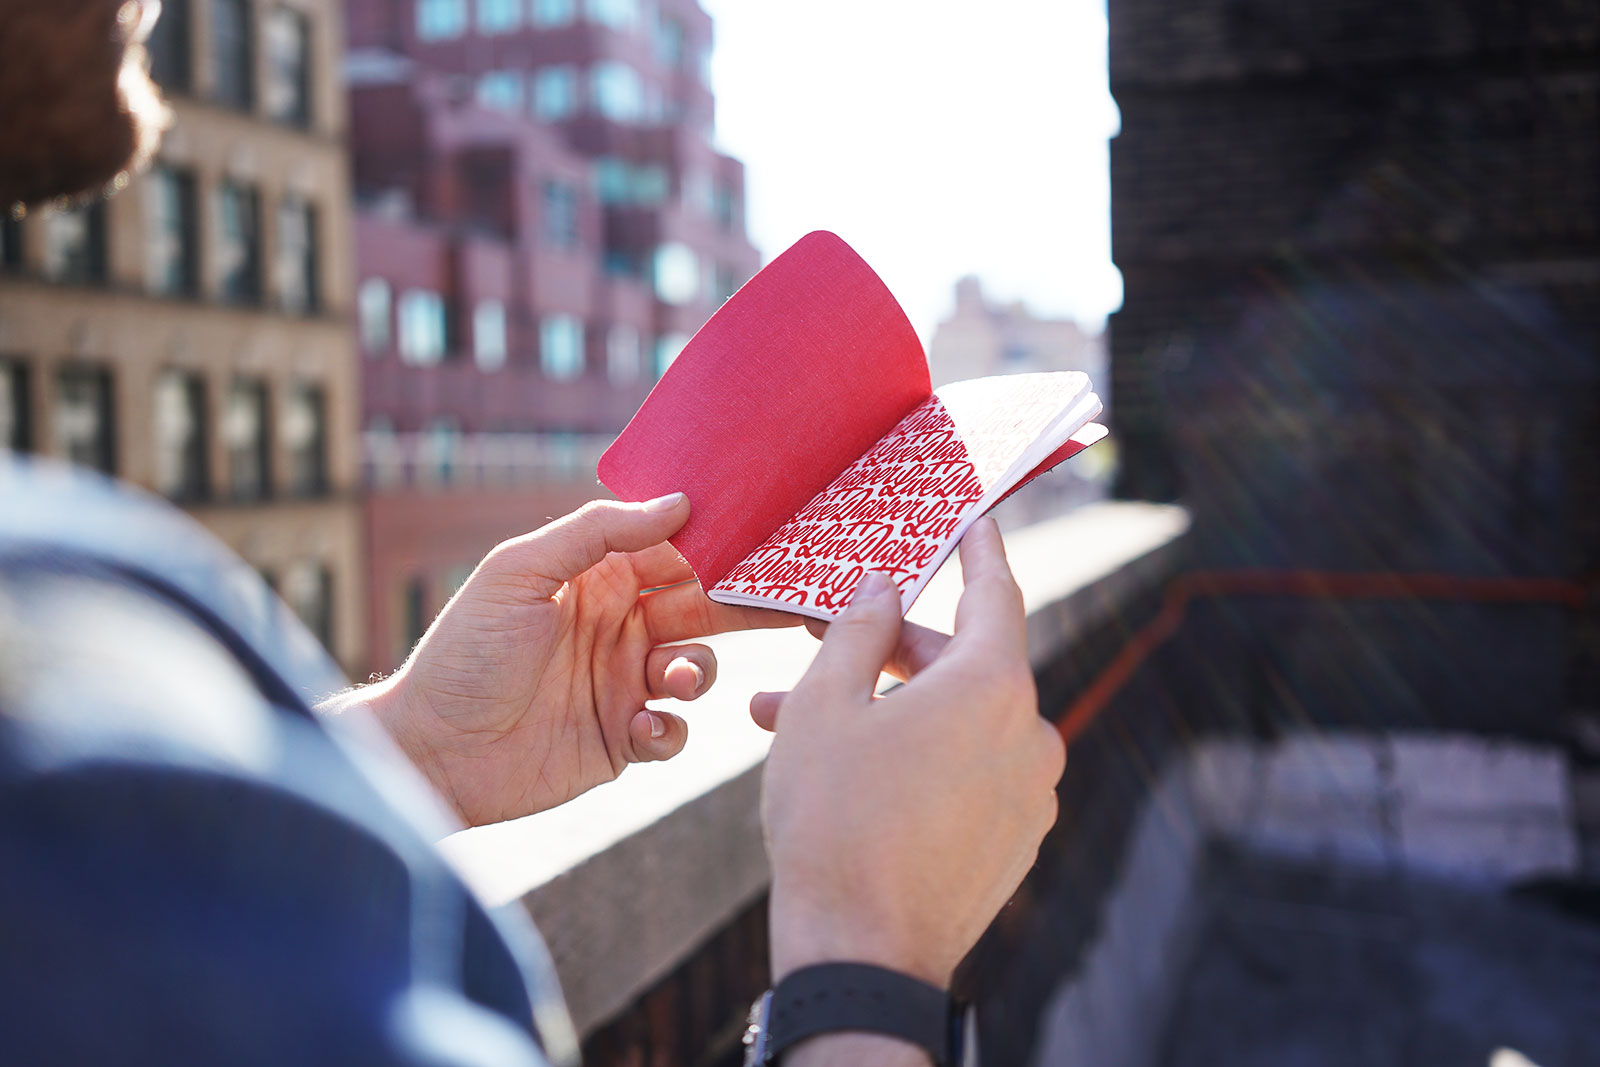 Pocket notebook in New York City with sun rays and building in the background